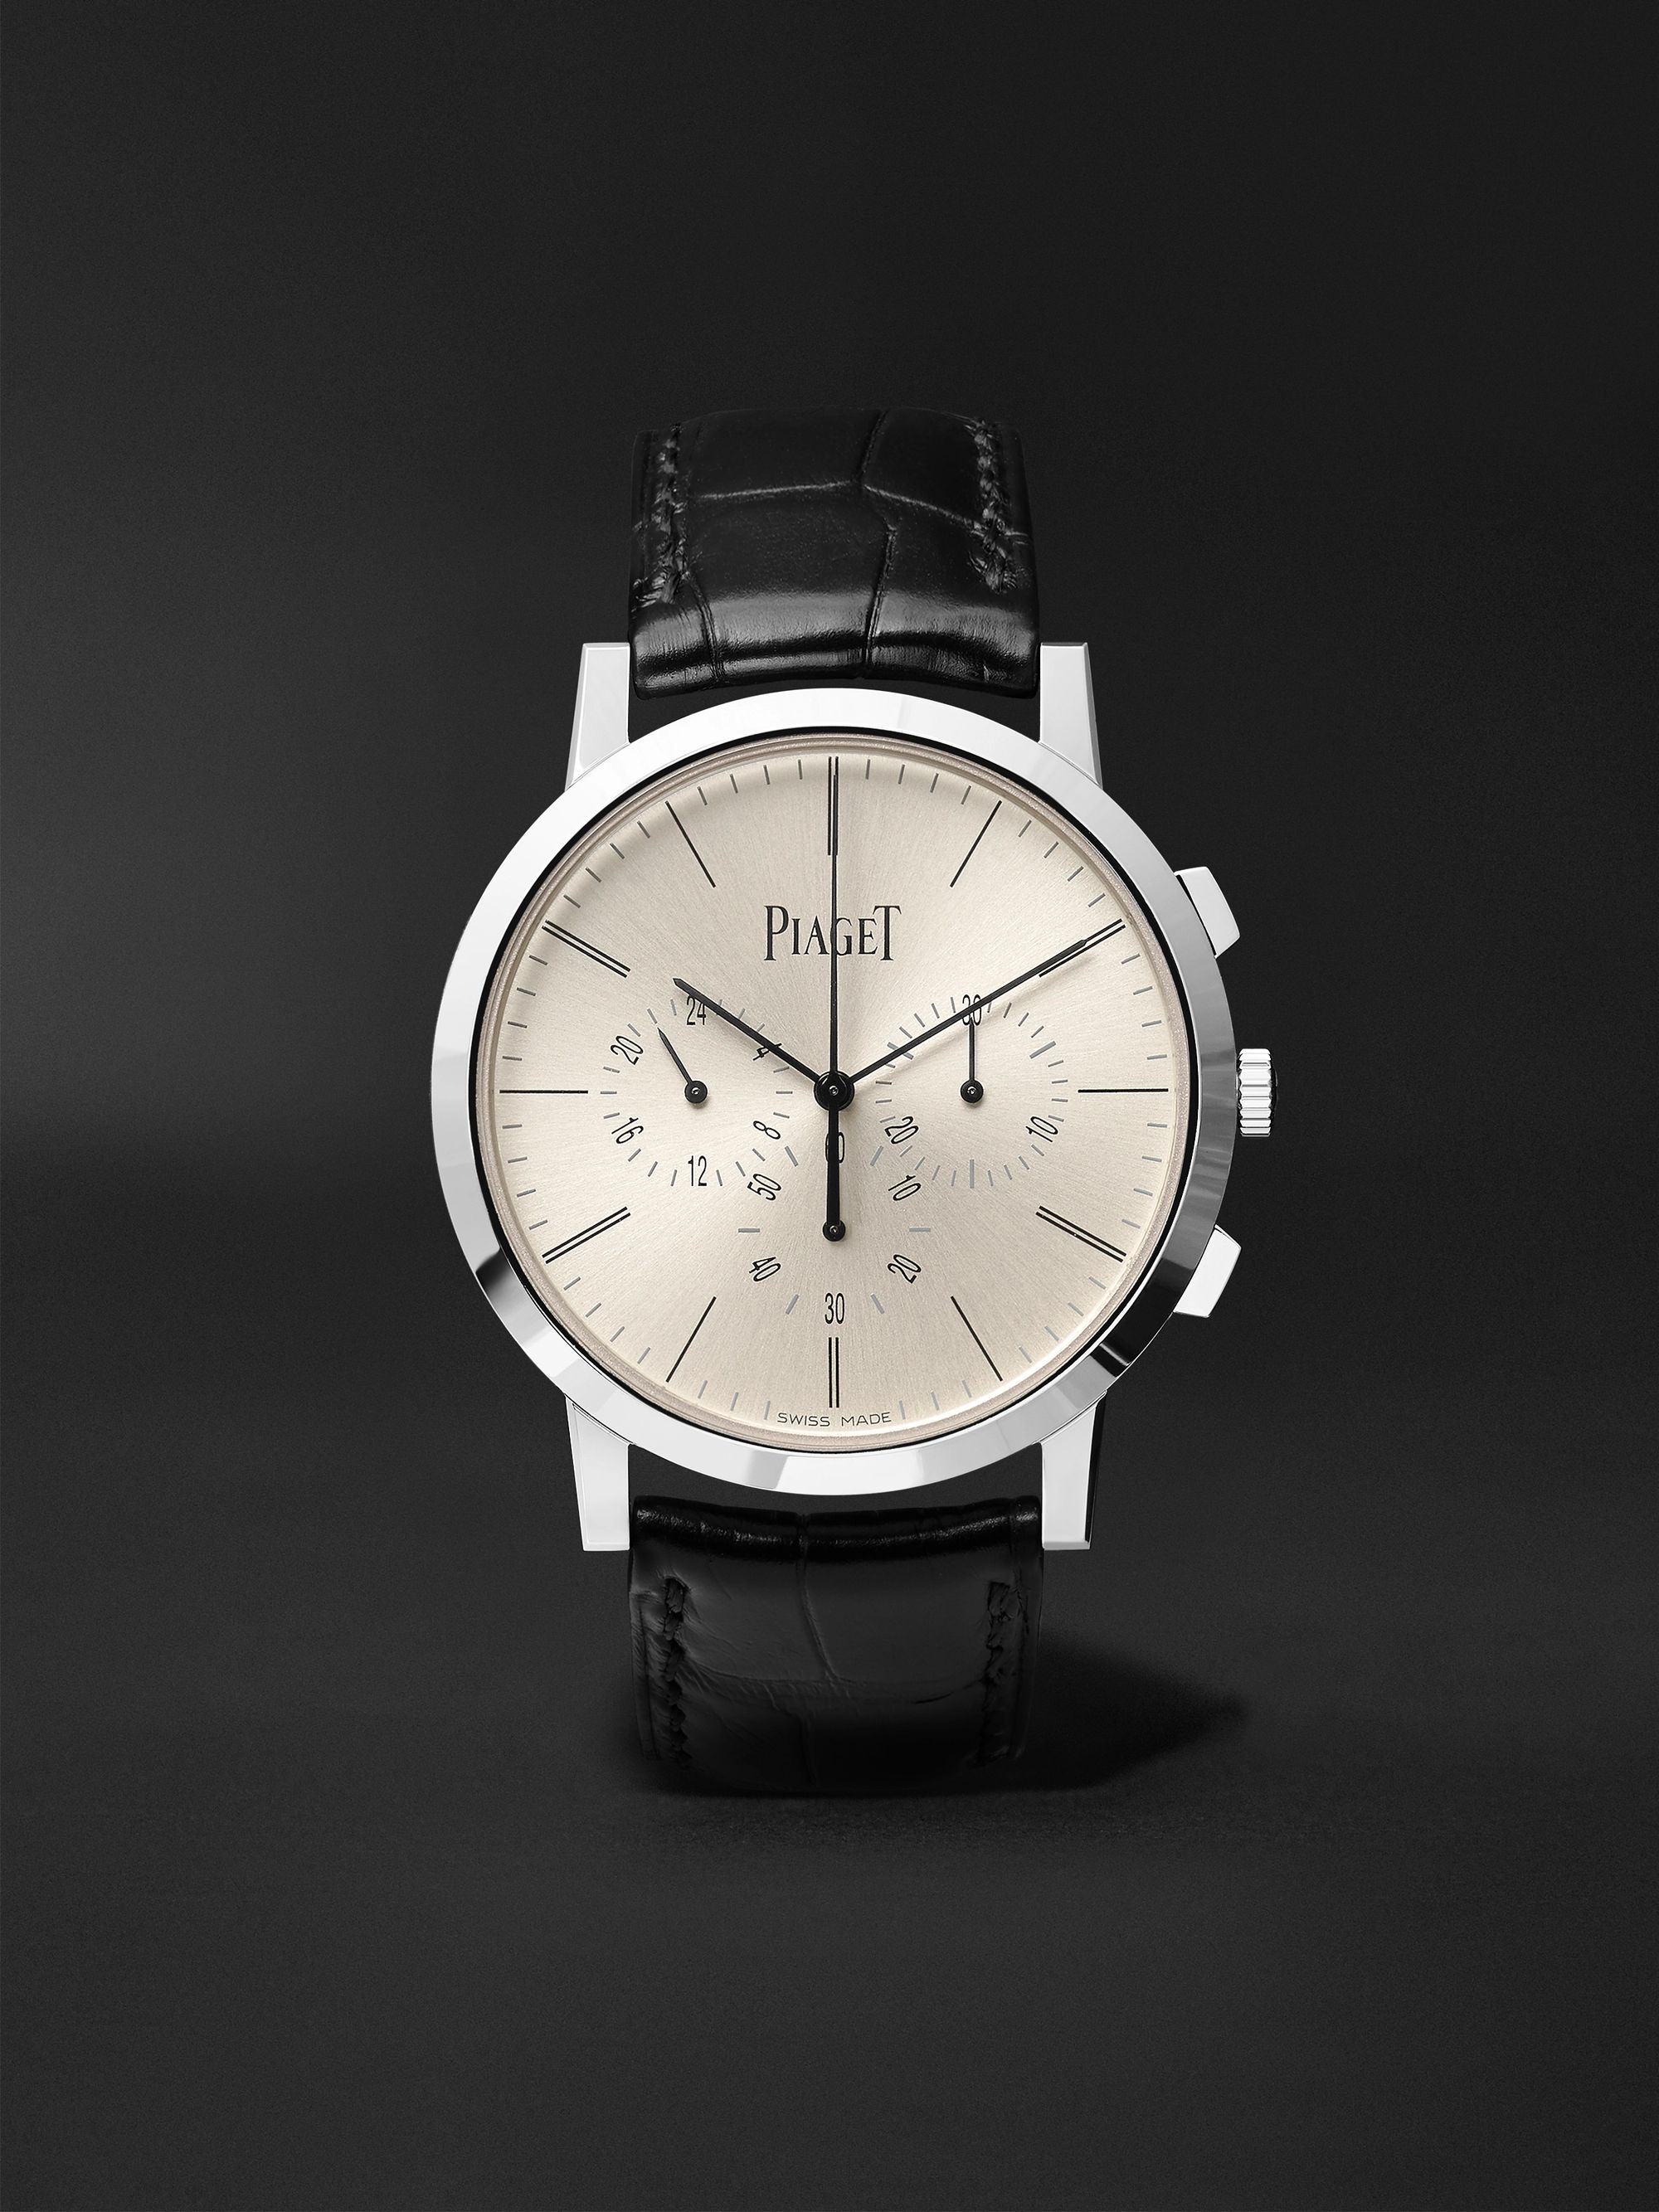 Piaget Altiplano Flyback Chronograph 41mm 18-Karat White Gold and Alligator Watch